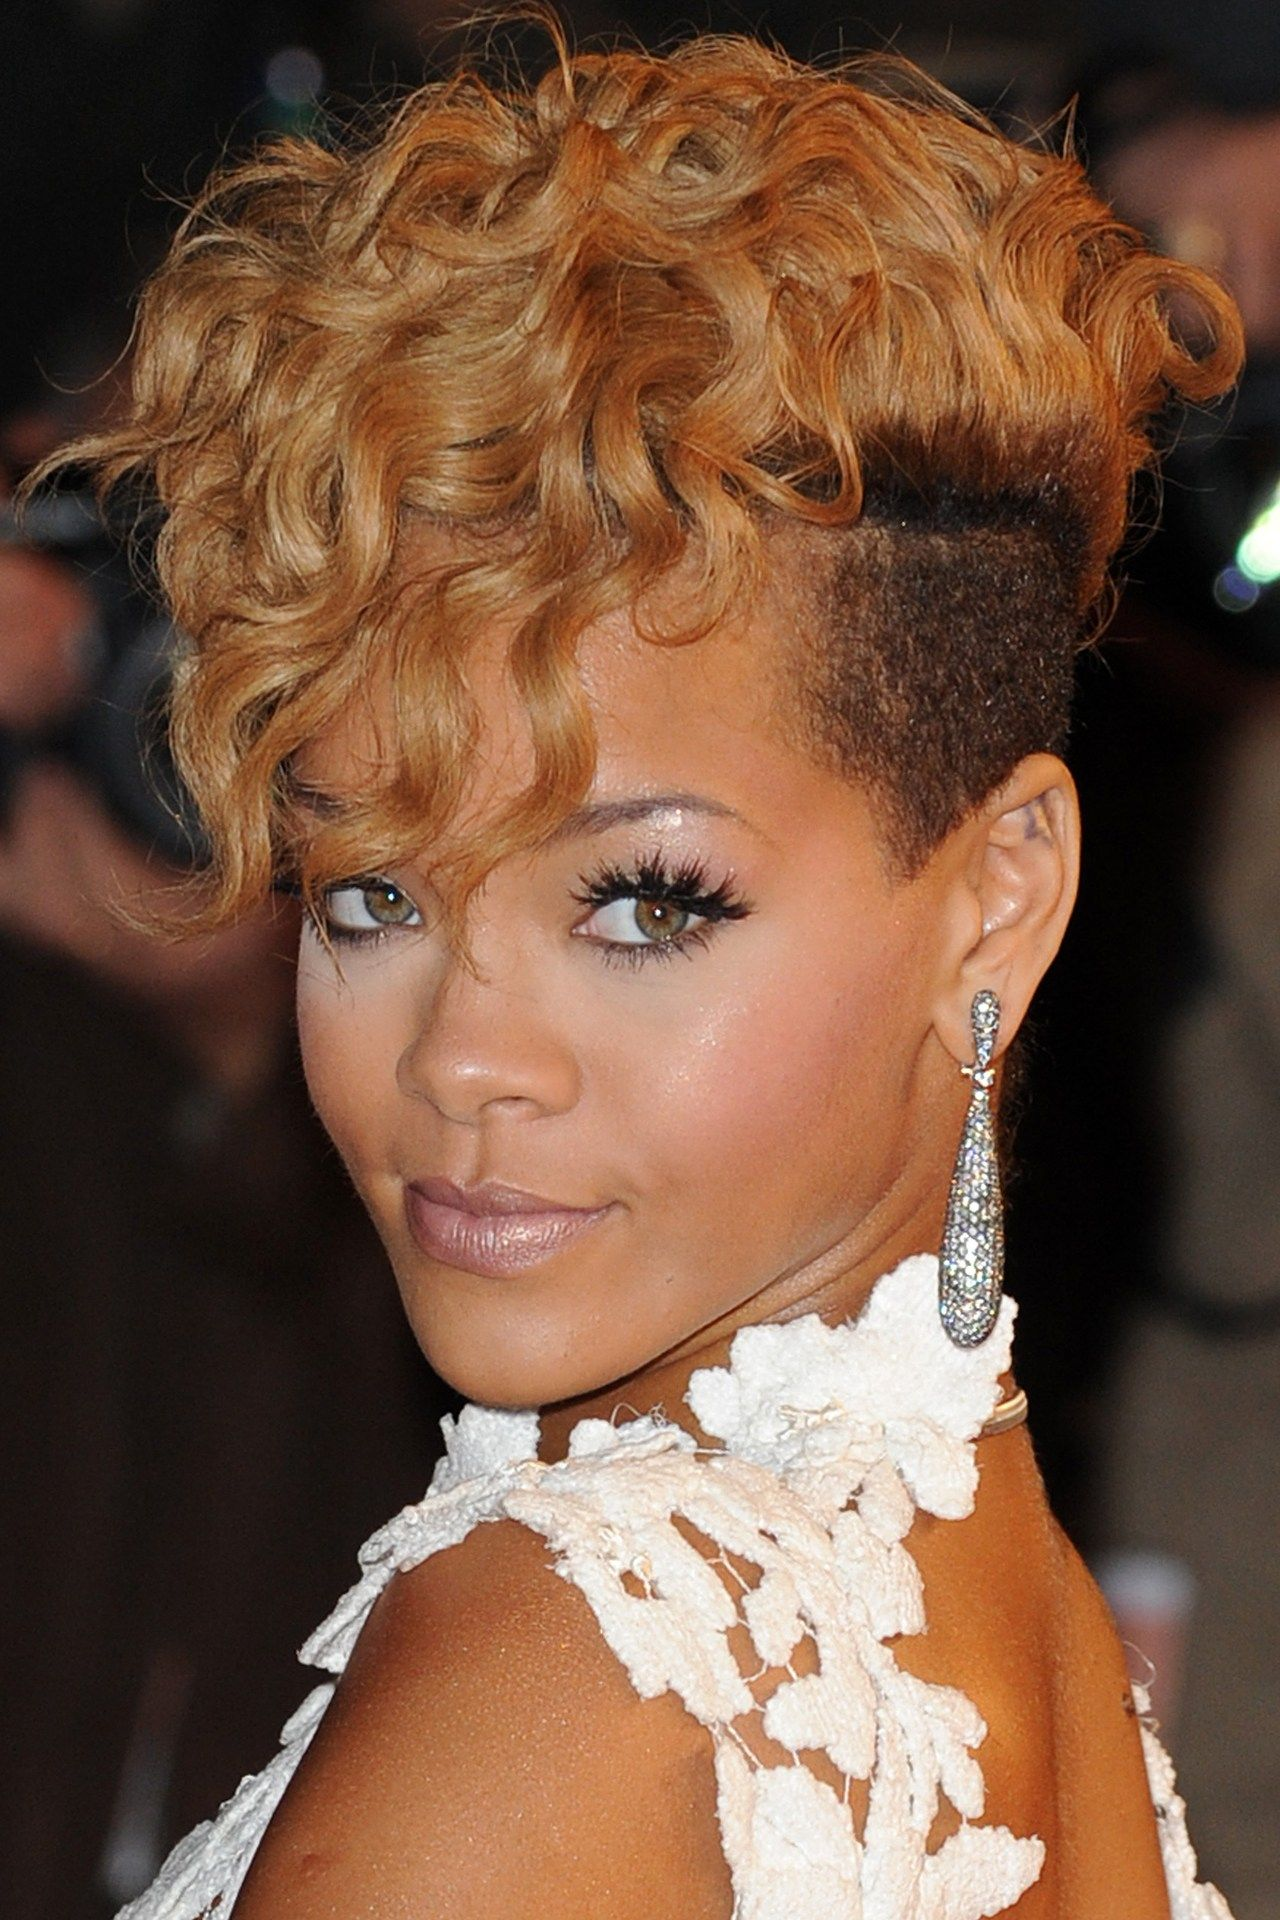 rihanna hairstyles & hair colour 2005-2013 pictures (vogue